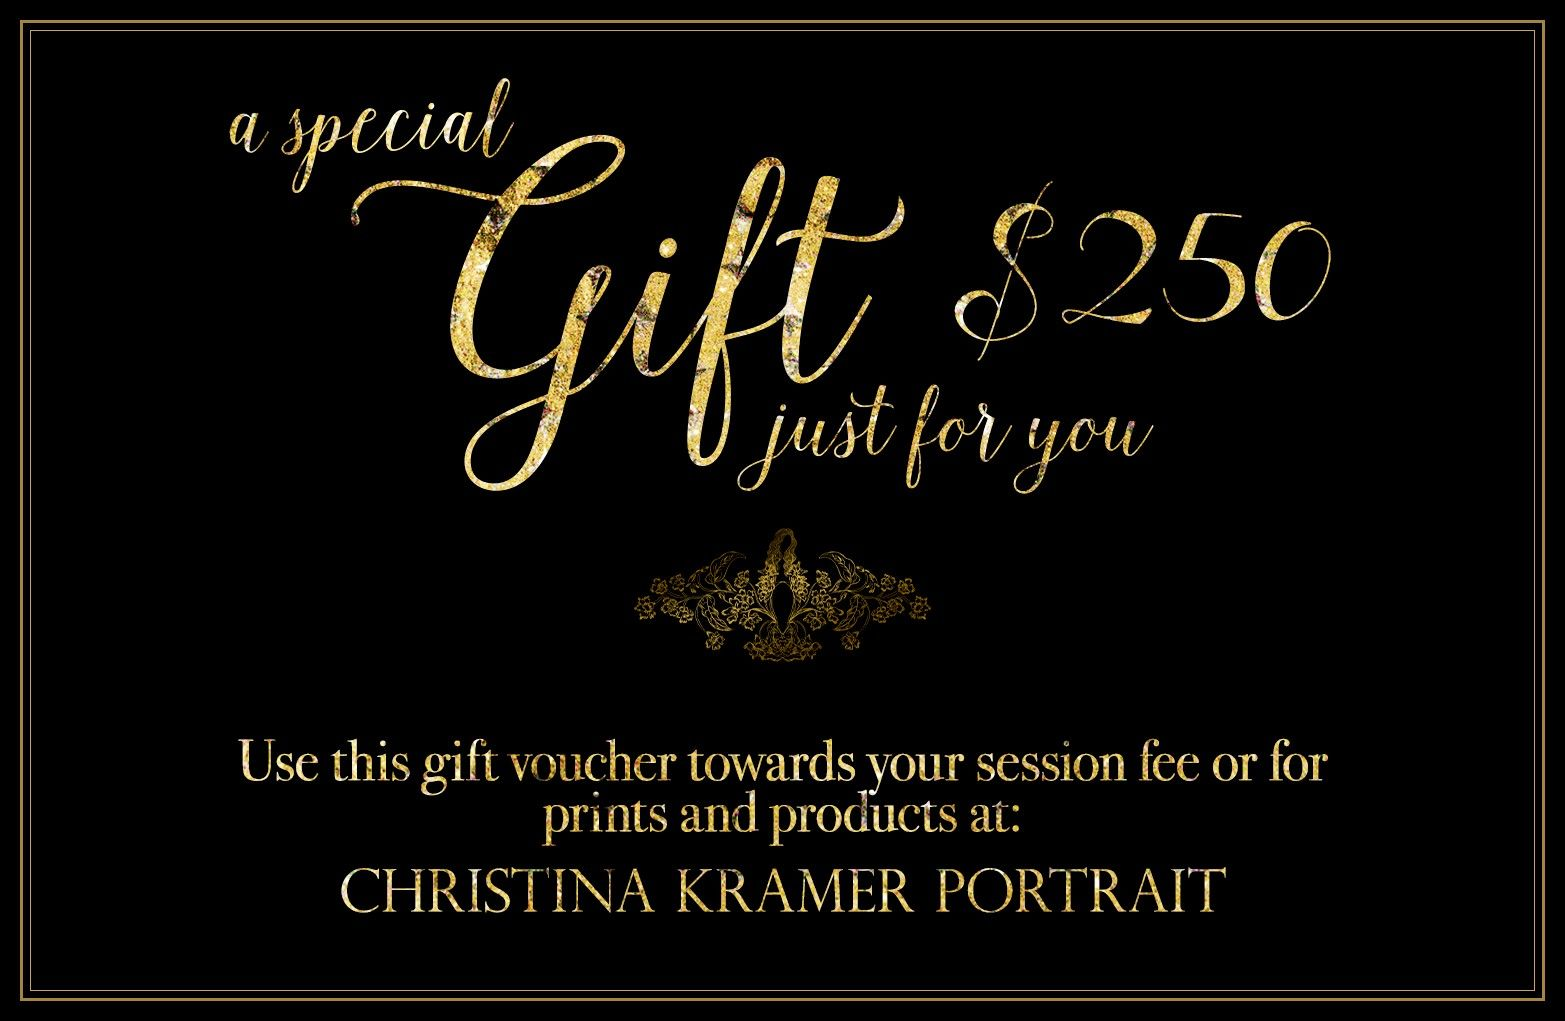 A special gift just for you. Use this $250 gift voucher towards your session fee or for prints and products at: CHRISTINA KRAMER PORTRAIT — LONG BEACH, NEW YORK © Christina Tisi Kramer